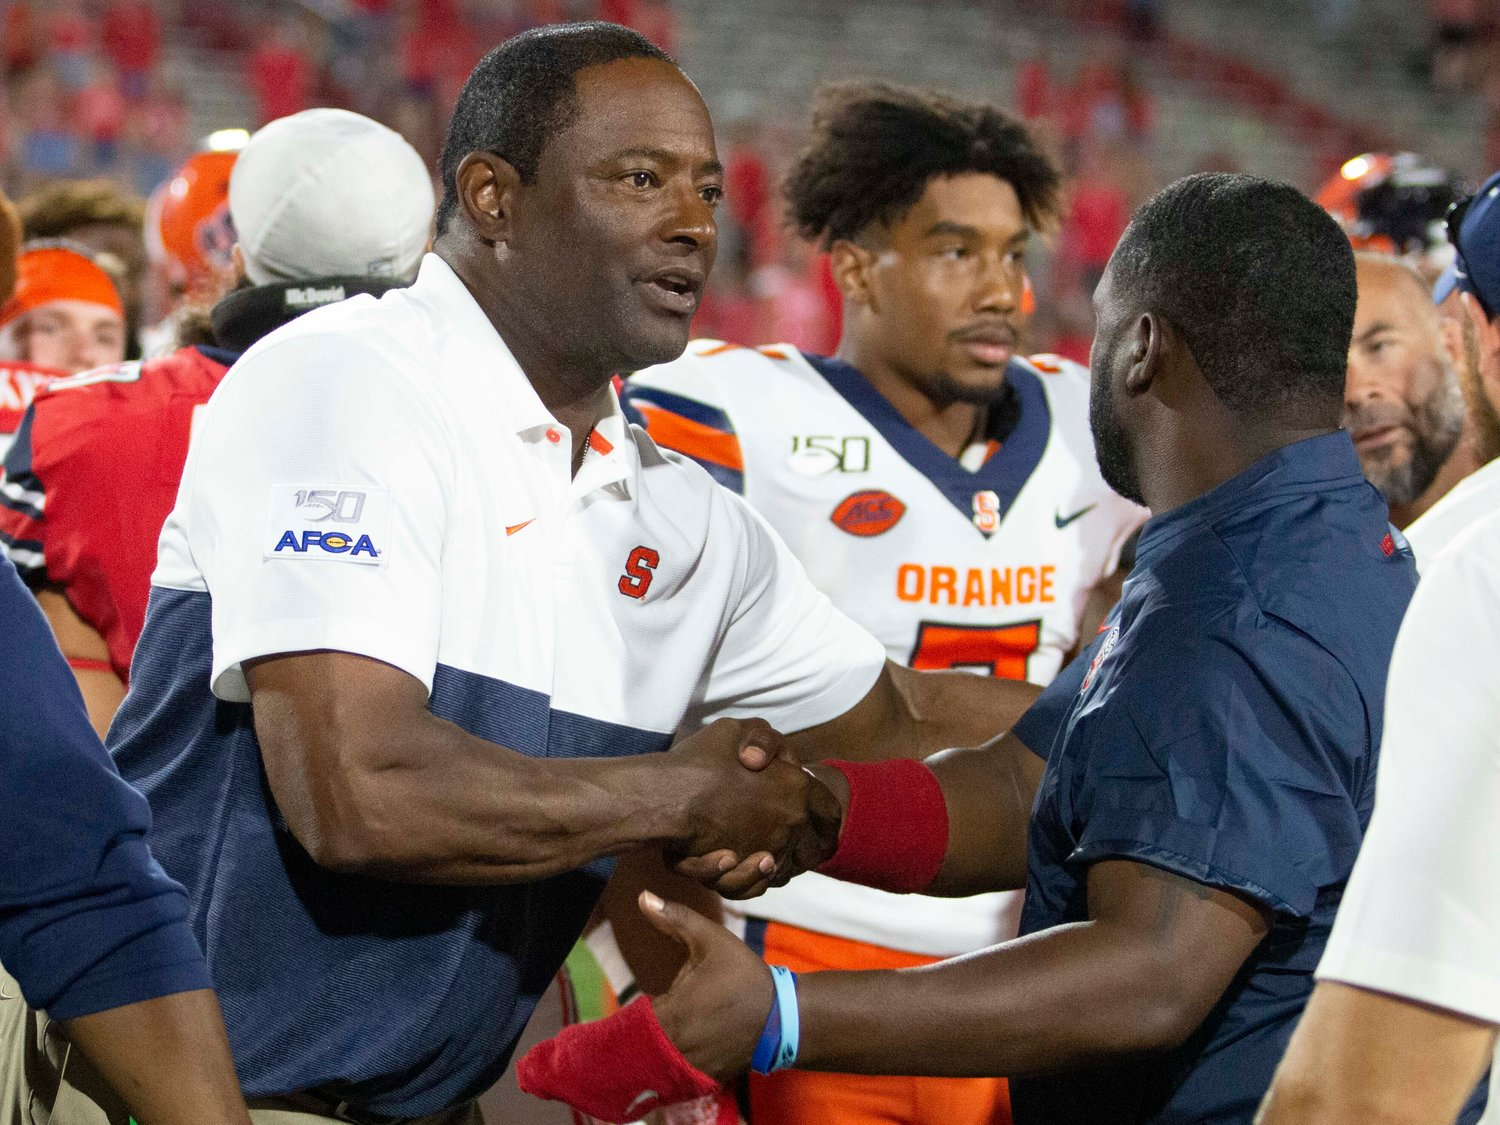 Syracuse head coach Dino Babers shakes hands after shutting out Liberty 24-0 during an NCAA game in Lynchburg, Va. Saturday.